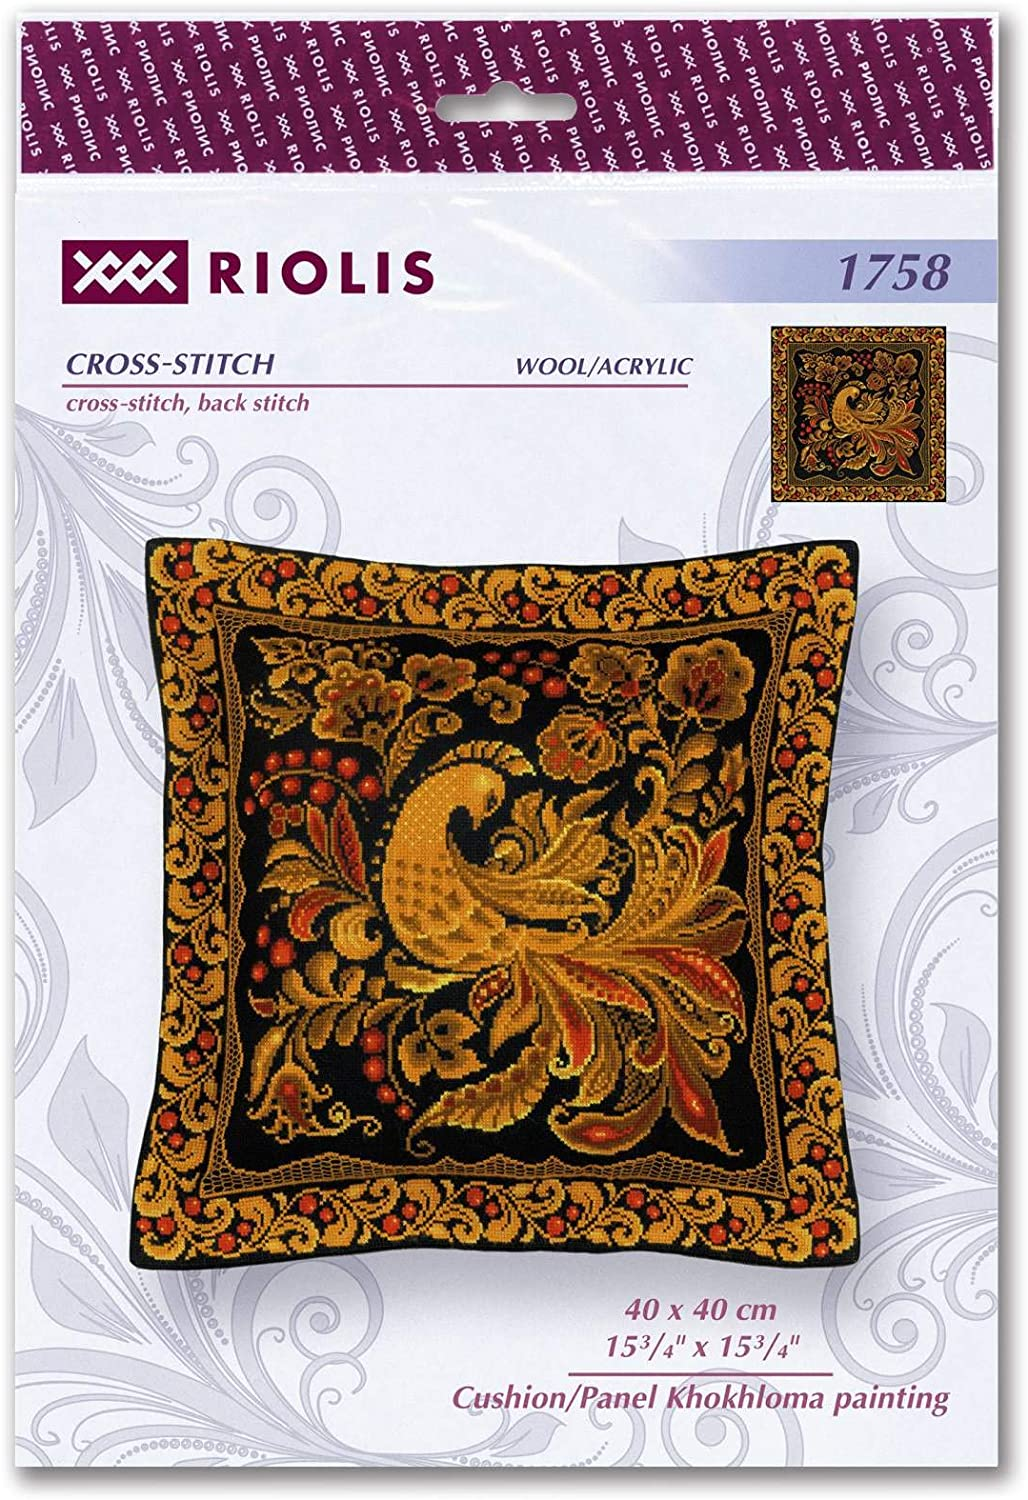 Counted Cross Stitch Kit 15/¾ x 15/¾ Zweigart 14 ct Dark Grey AIDA 3 Colors Cushion//Panel Viennese Lace RIOLIS 1600